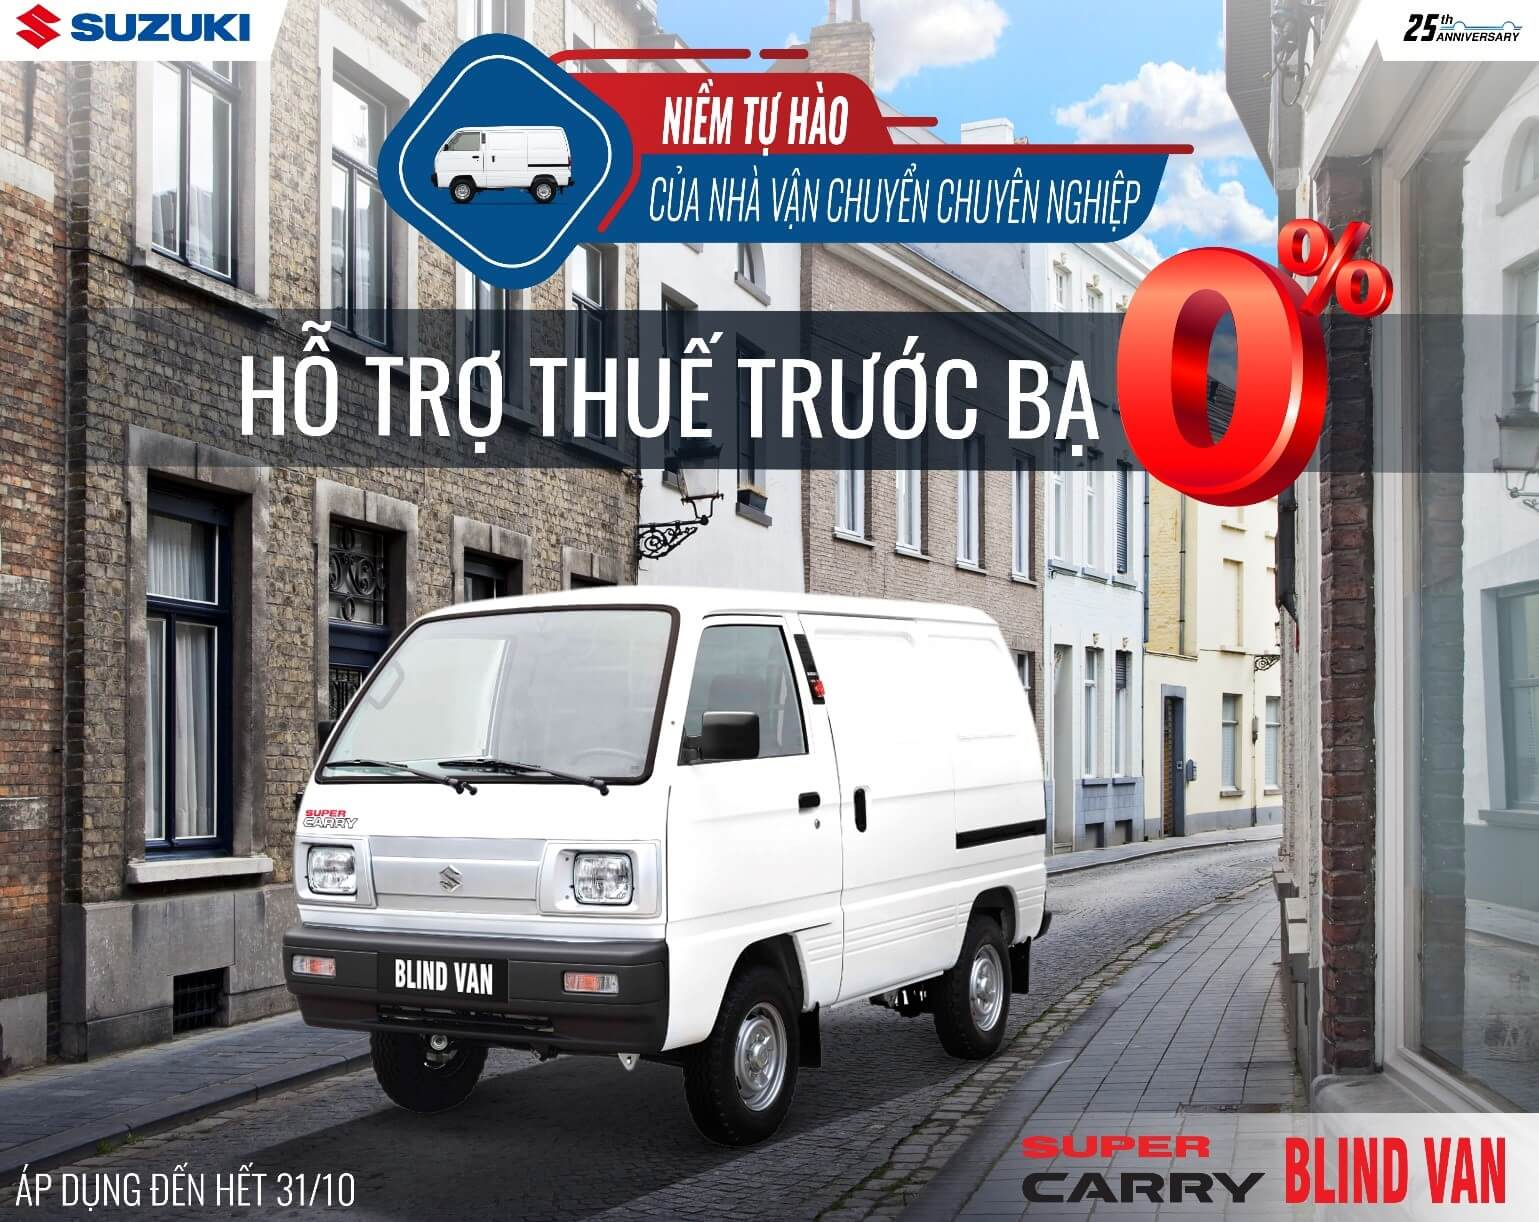 SUZUKI CARRY BLIND VAN